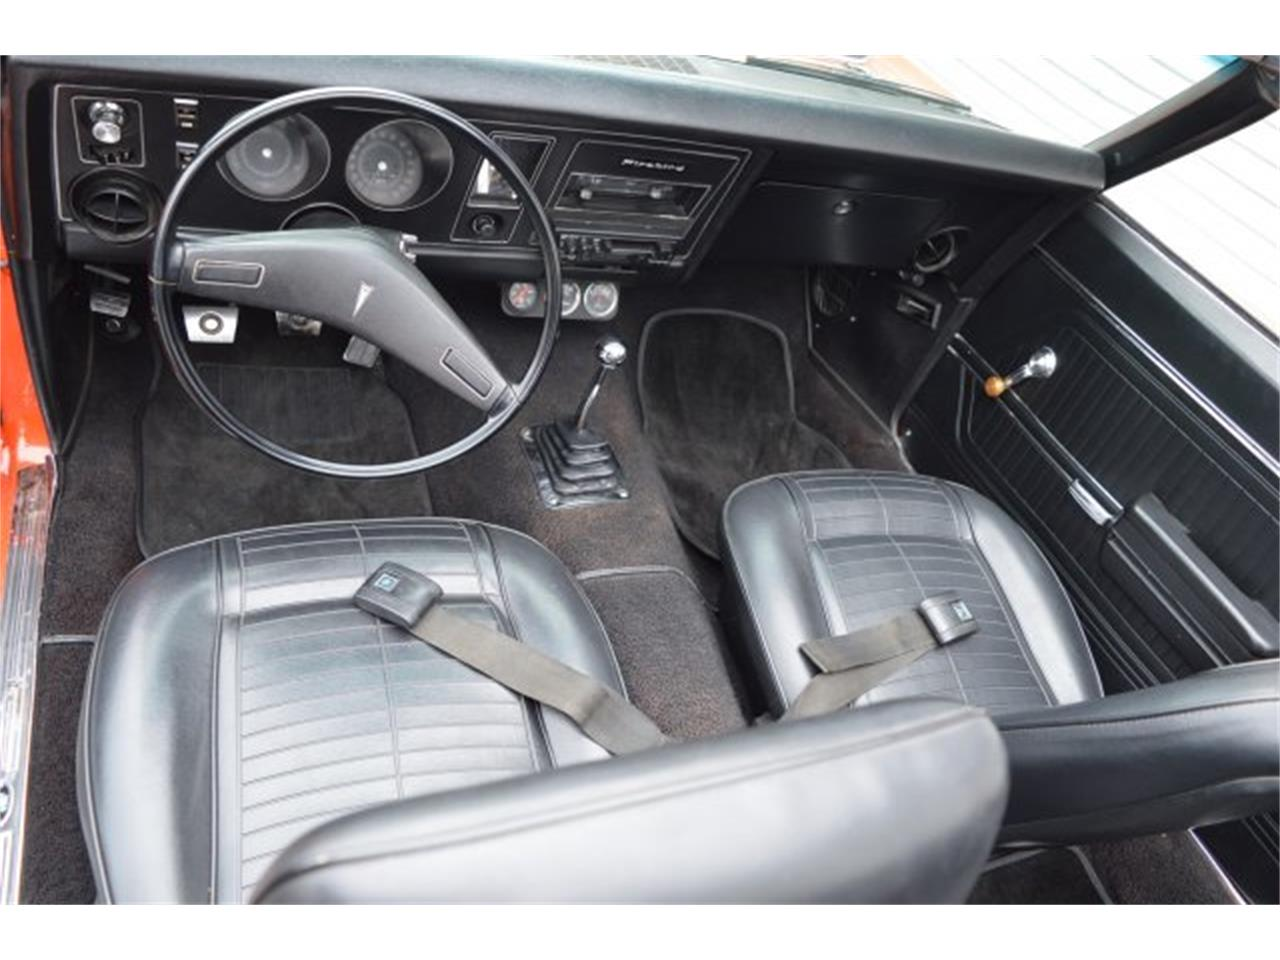 1968 Pontiac Firebird for sale in San Jose, CA – photo 48